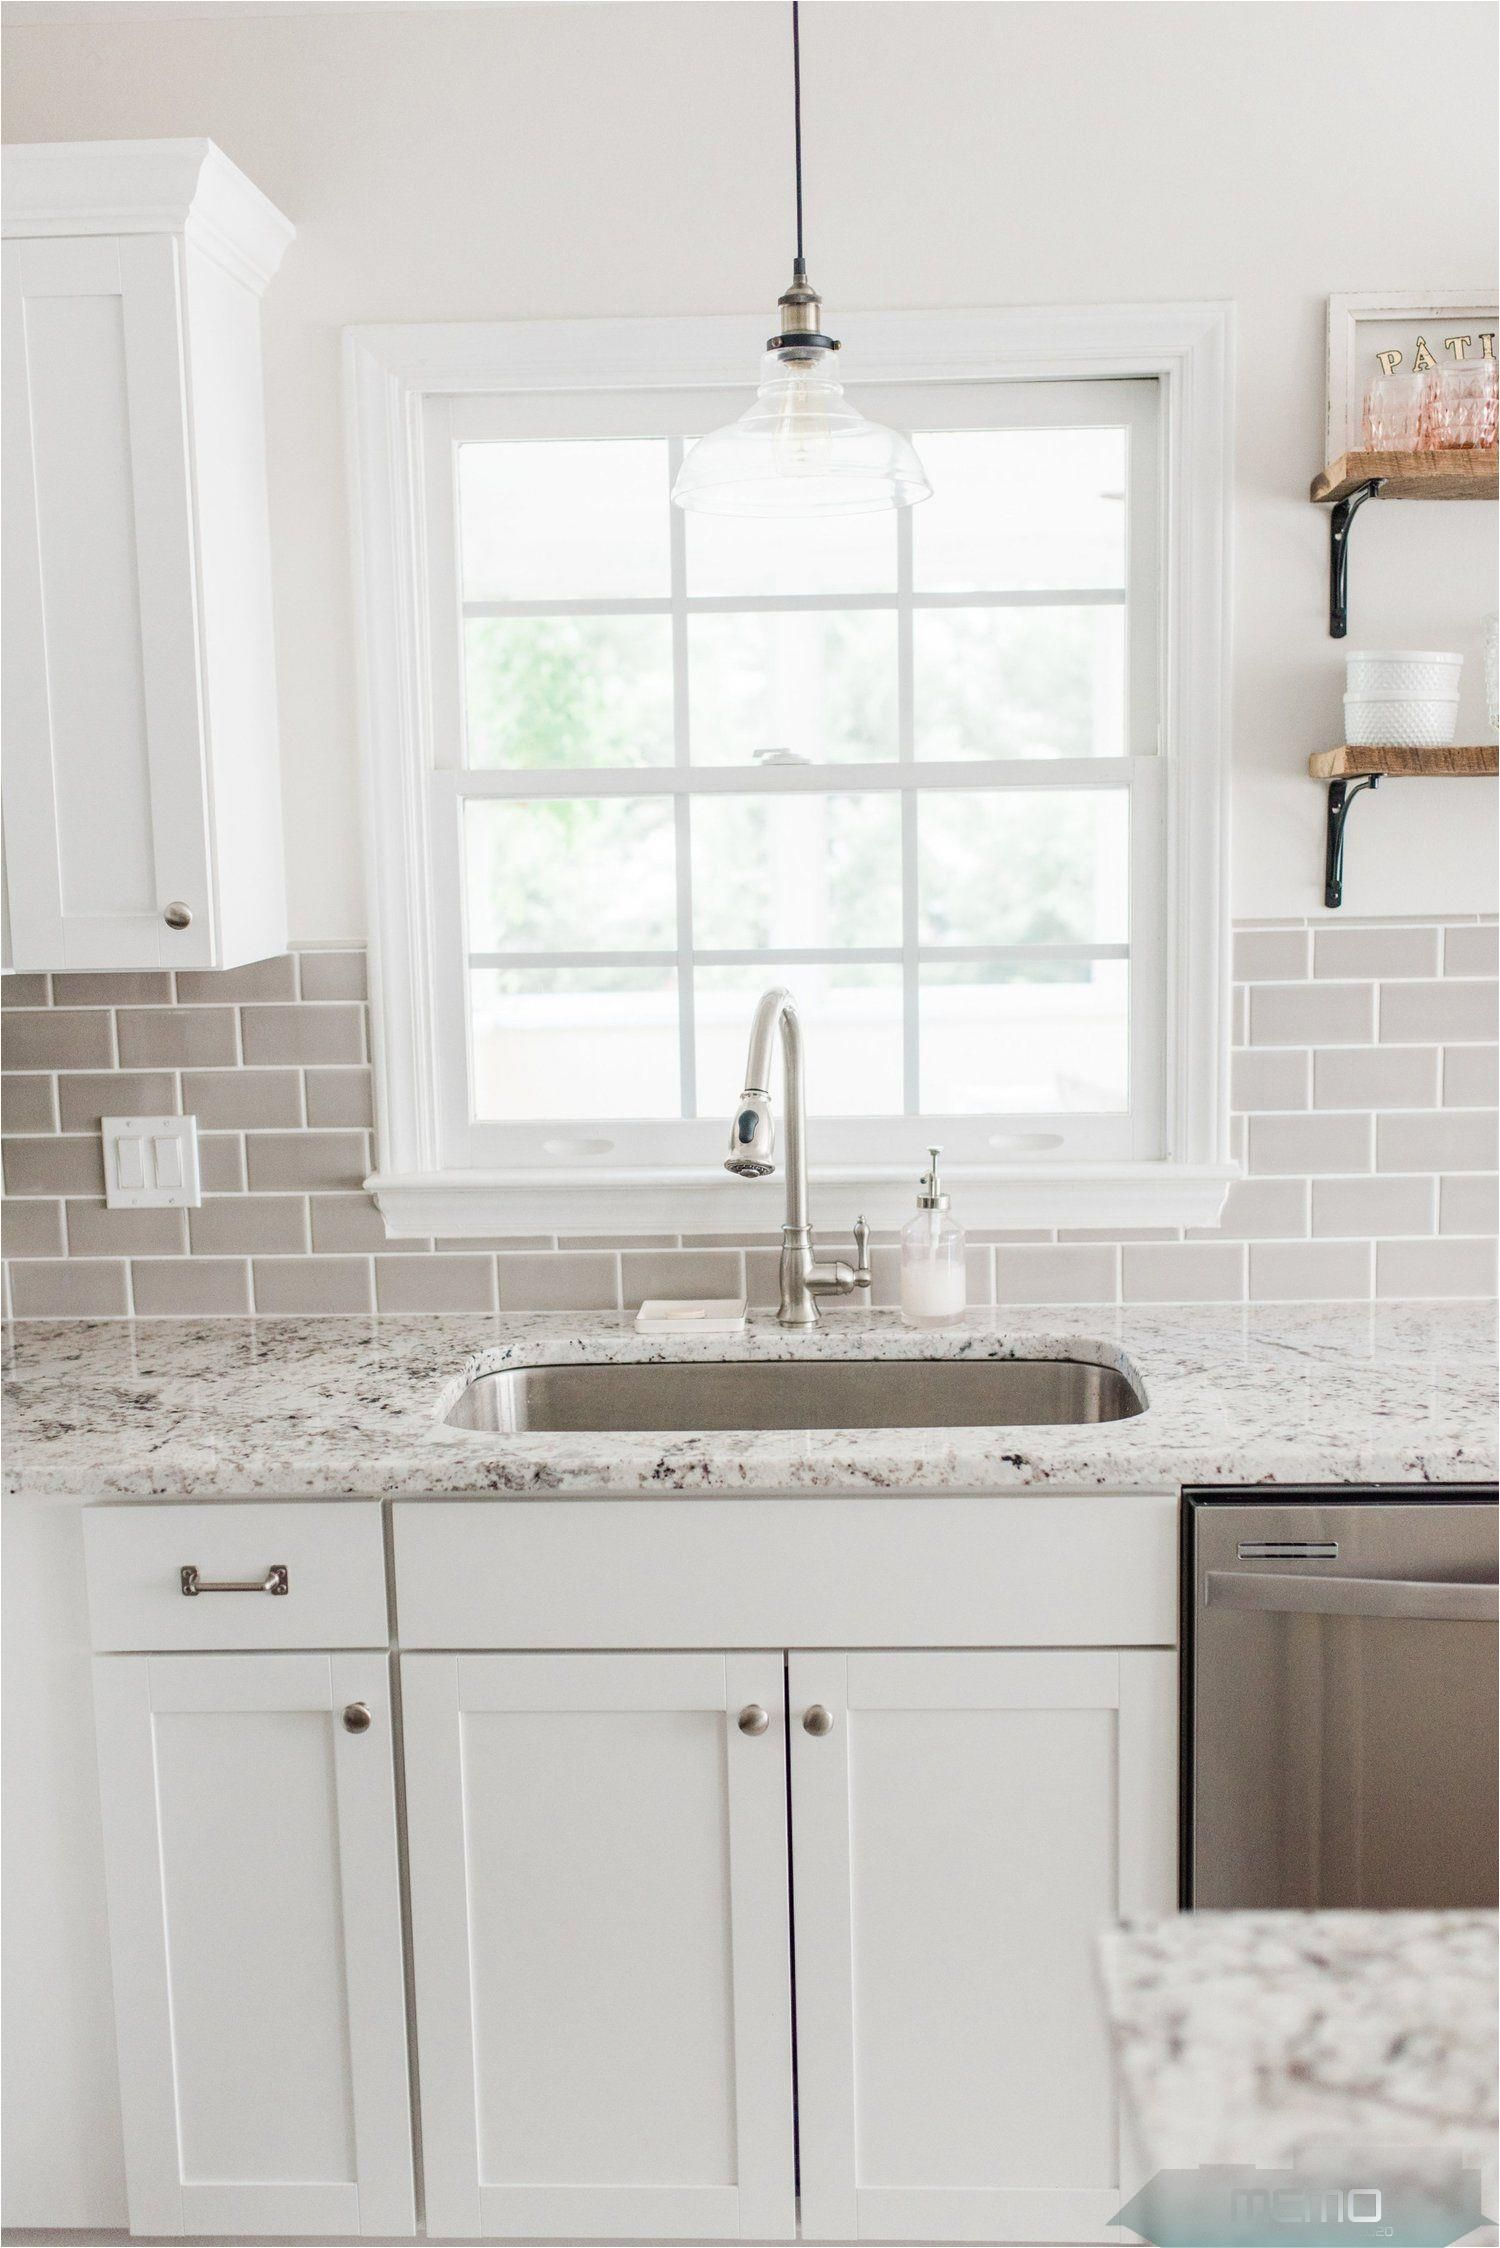 Jul 25 2019 Ia Ve Gotten A Couple Of Emails Over The Years Asking About Our Experience W In 2020 White Shaker Kitchen White Shaker Cabinets Shaker Kitchen Cabinets